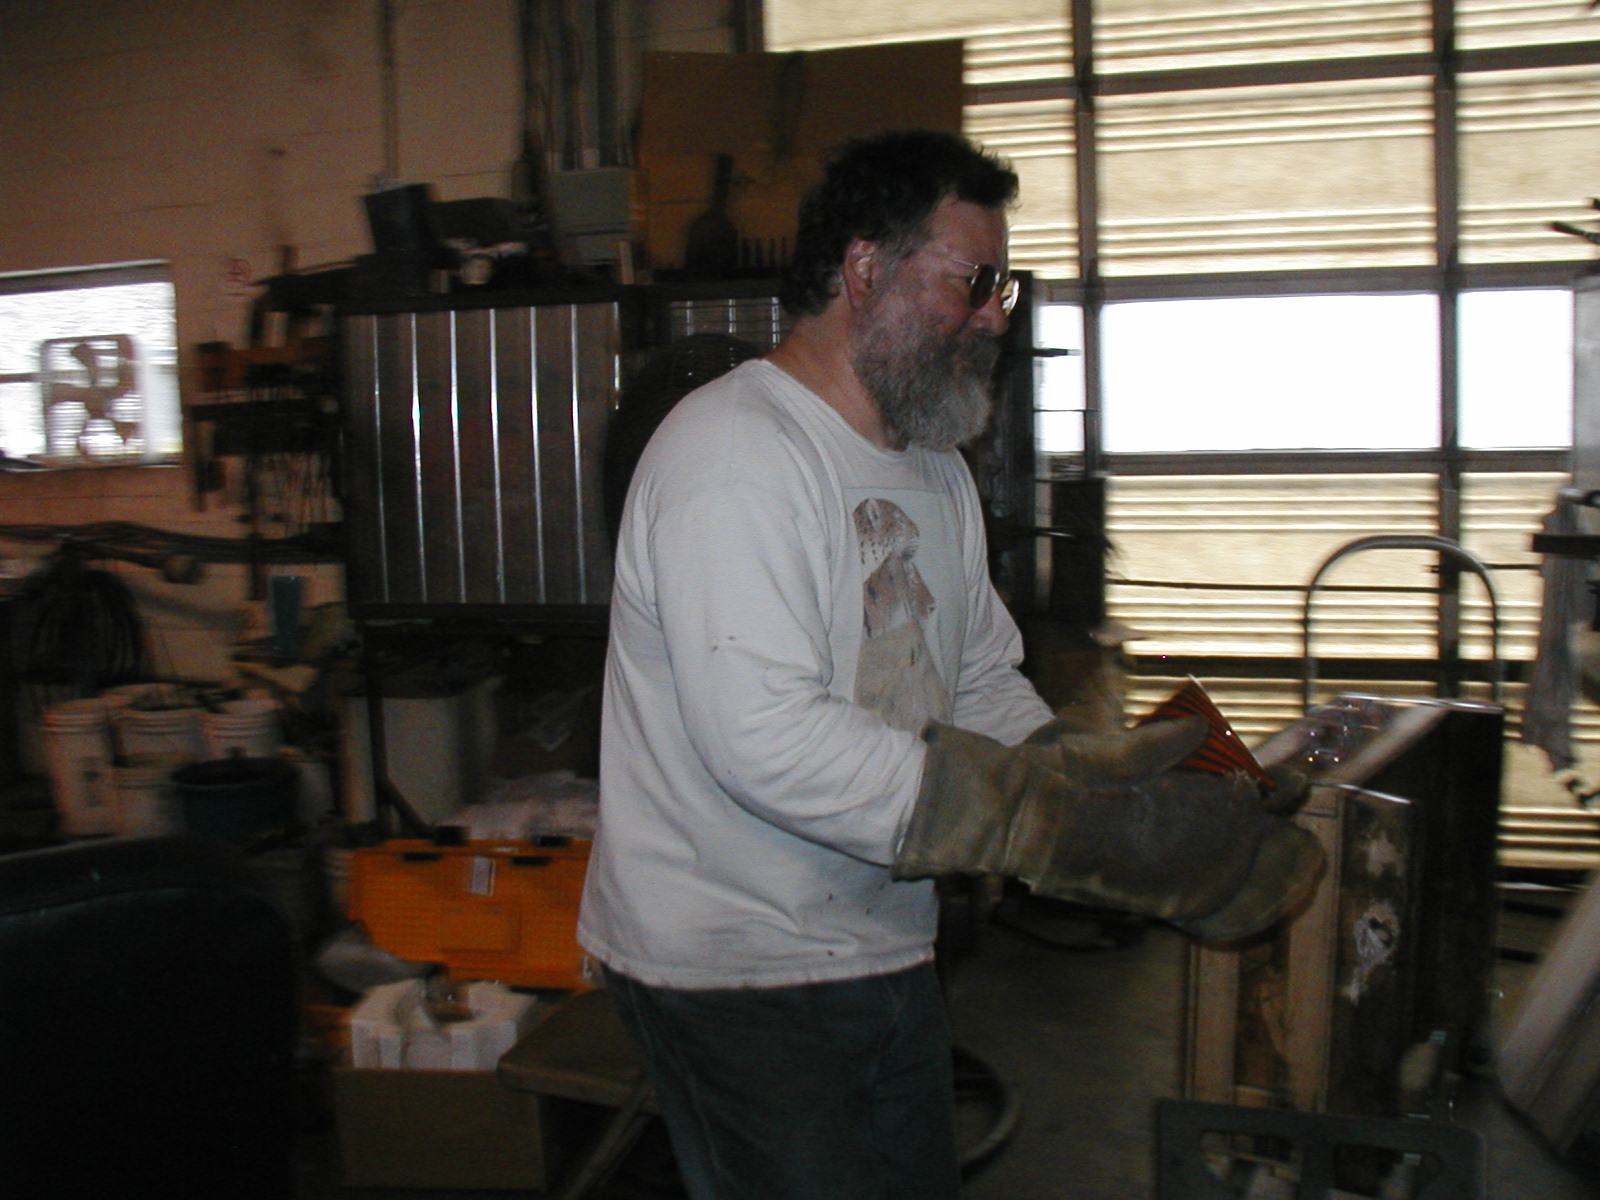 Glassblower.Info - Joel Bless Glasslight Glassblowing class January 18 2004 #123